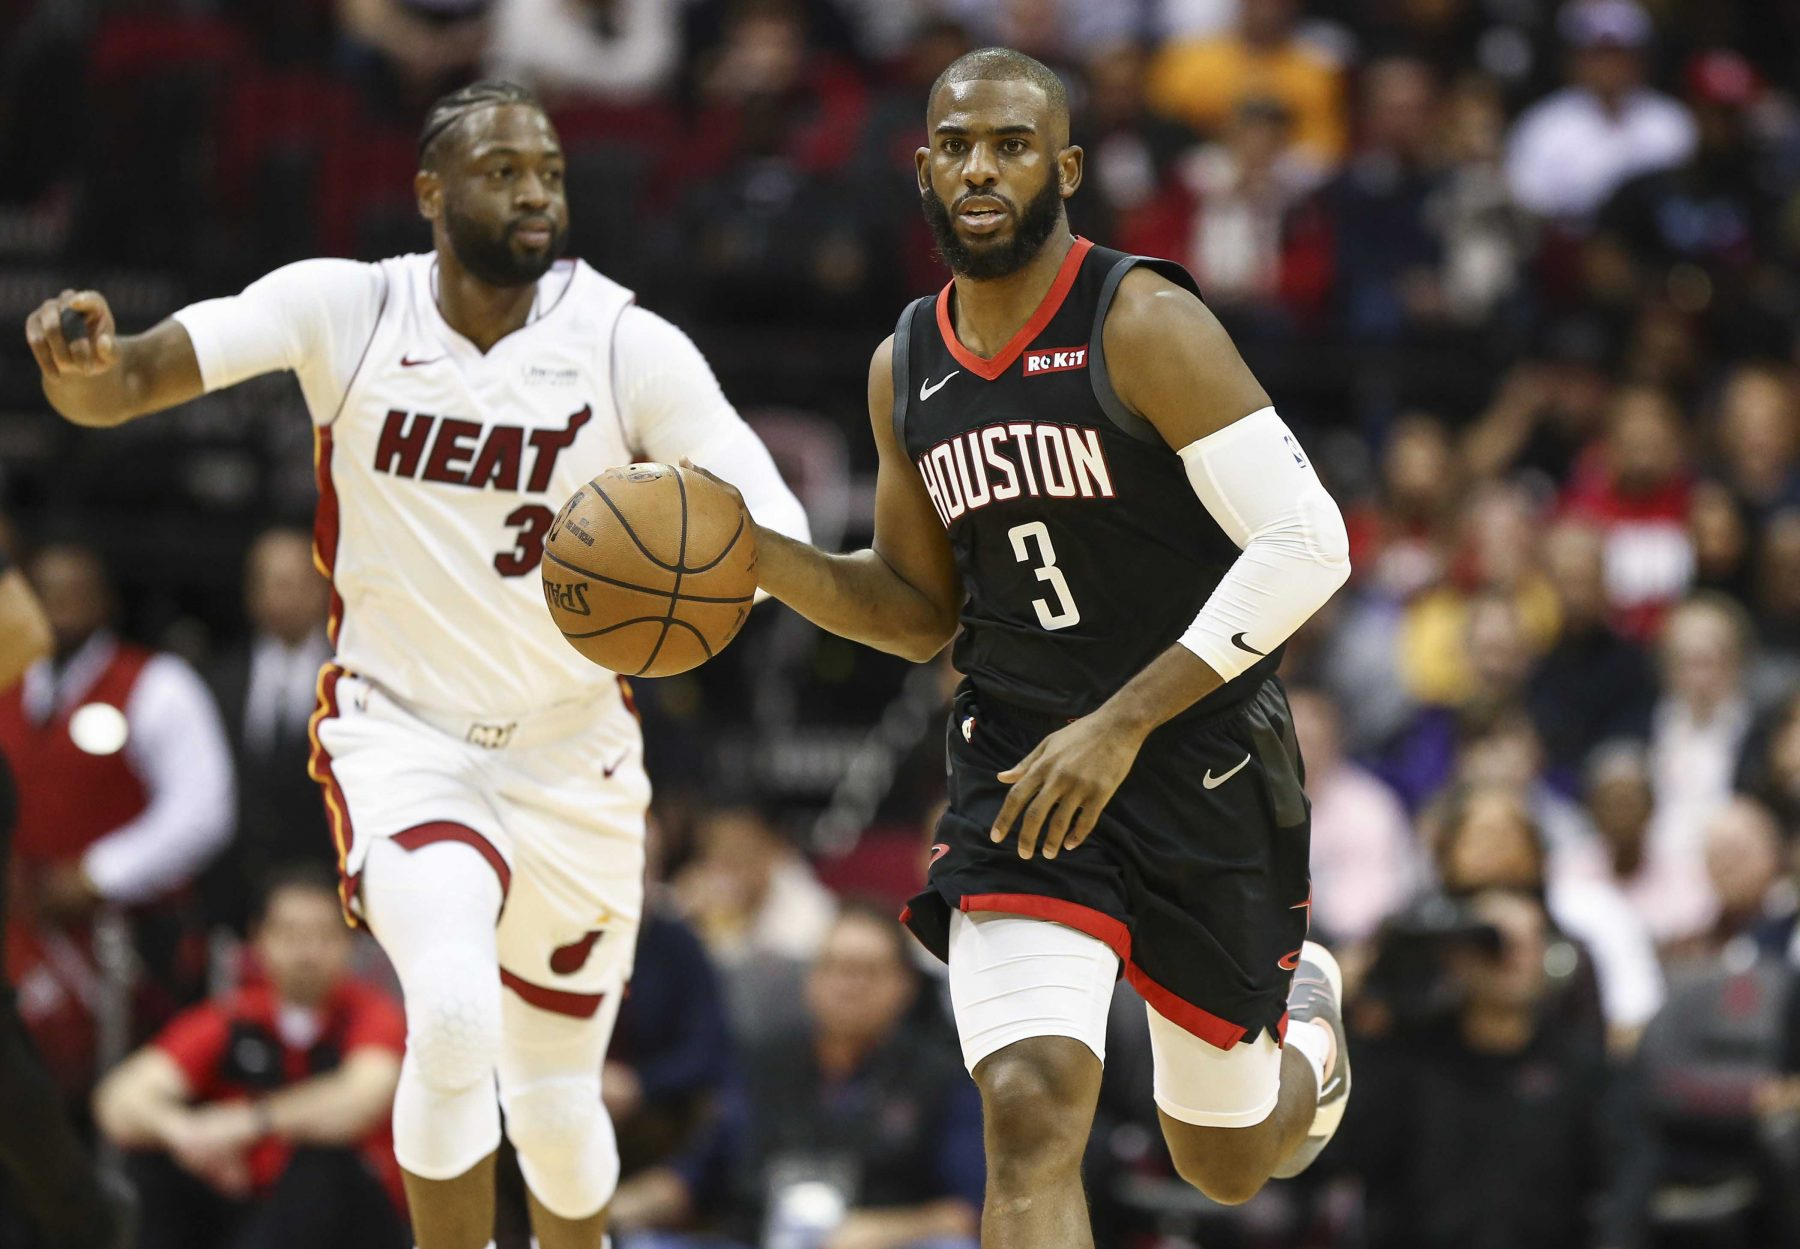 Chris Paul trade rumors: Heat not 'actively pursuing' deal for Thunder guard